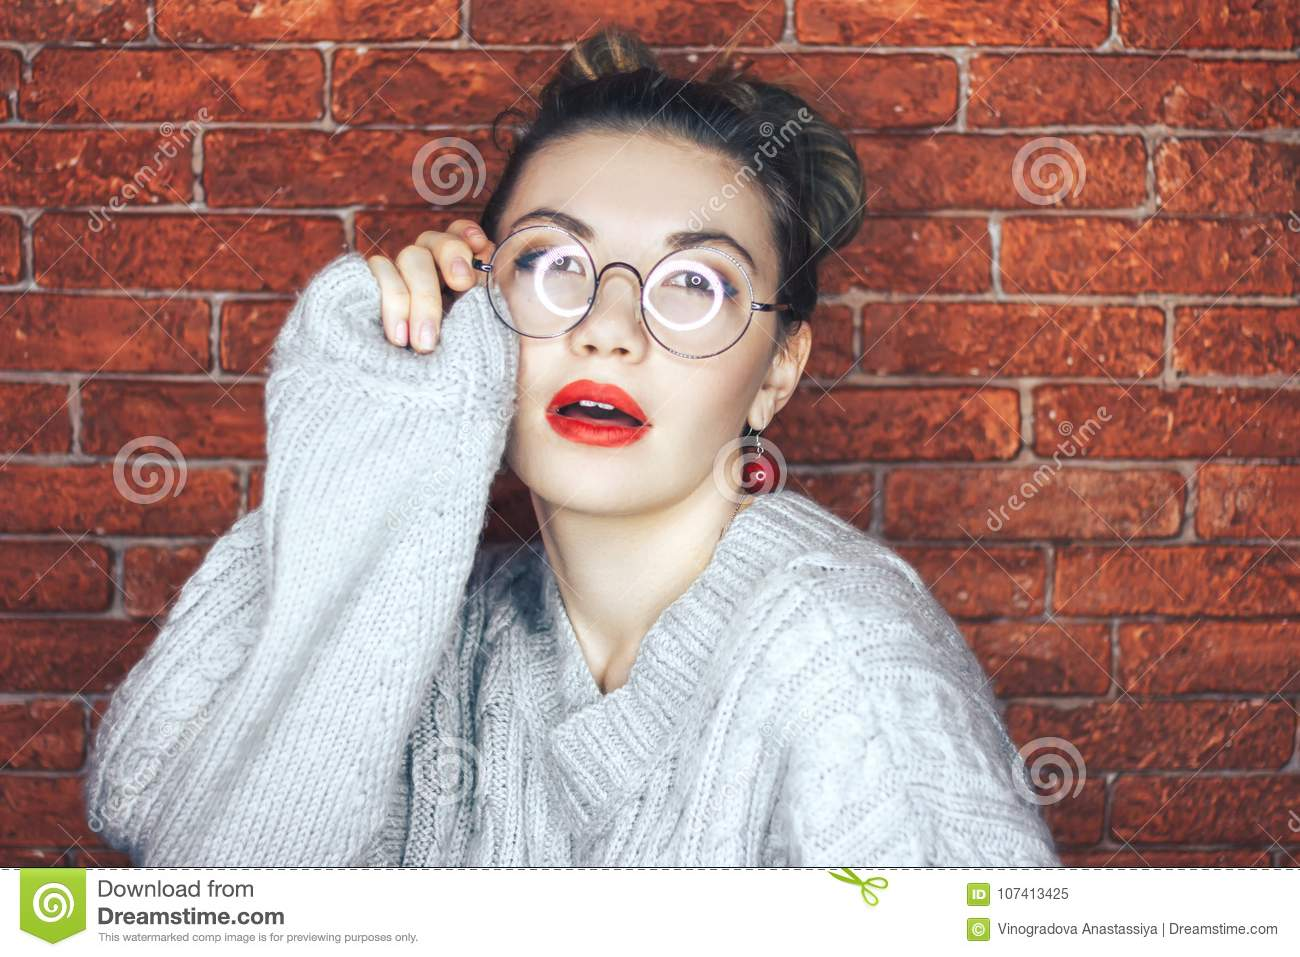 c3486bc4f5 Charming brunette young woman in glasses wearing gray sweater touching  glasses with eyes closed posing. Red brick background. Red lips.